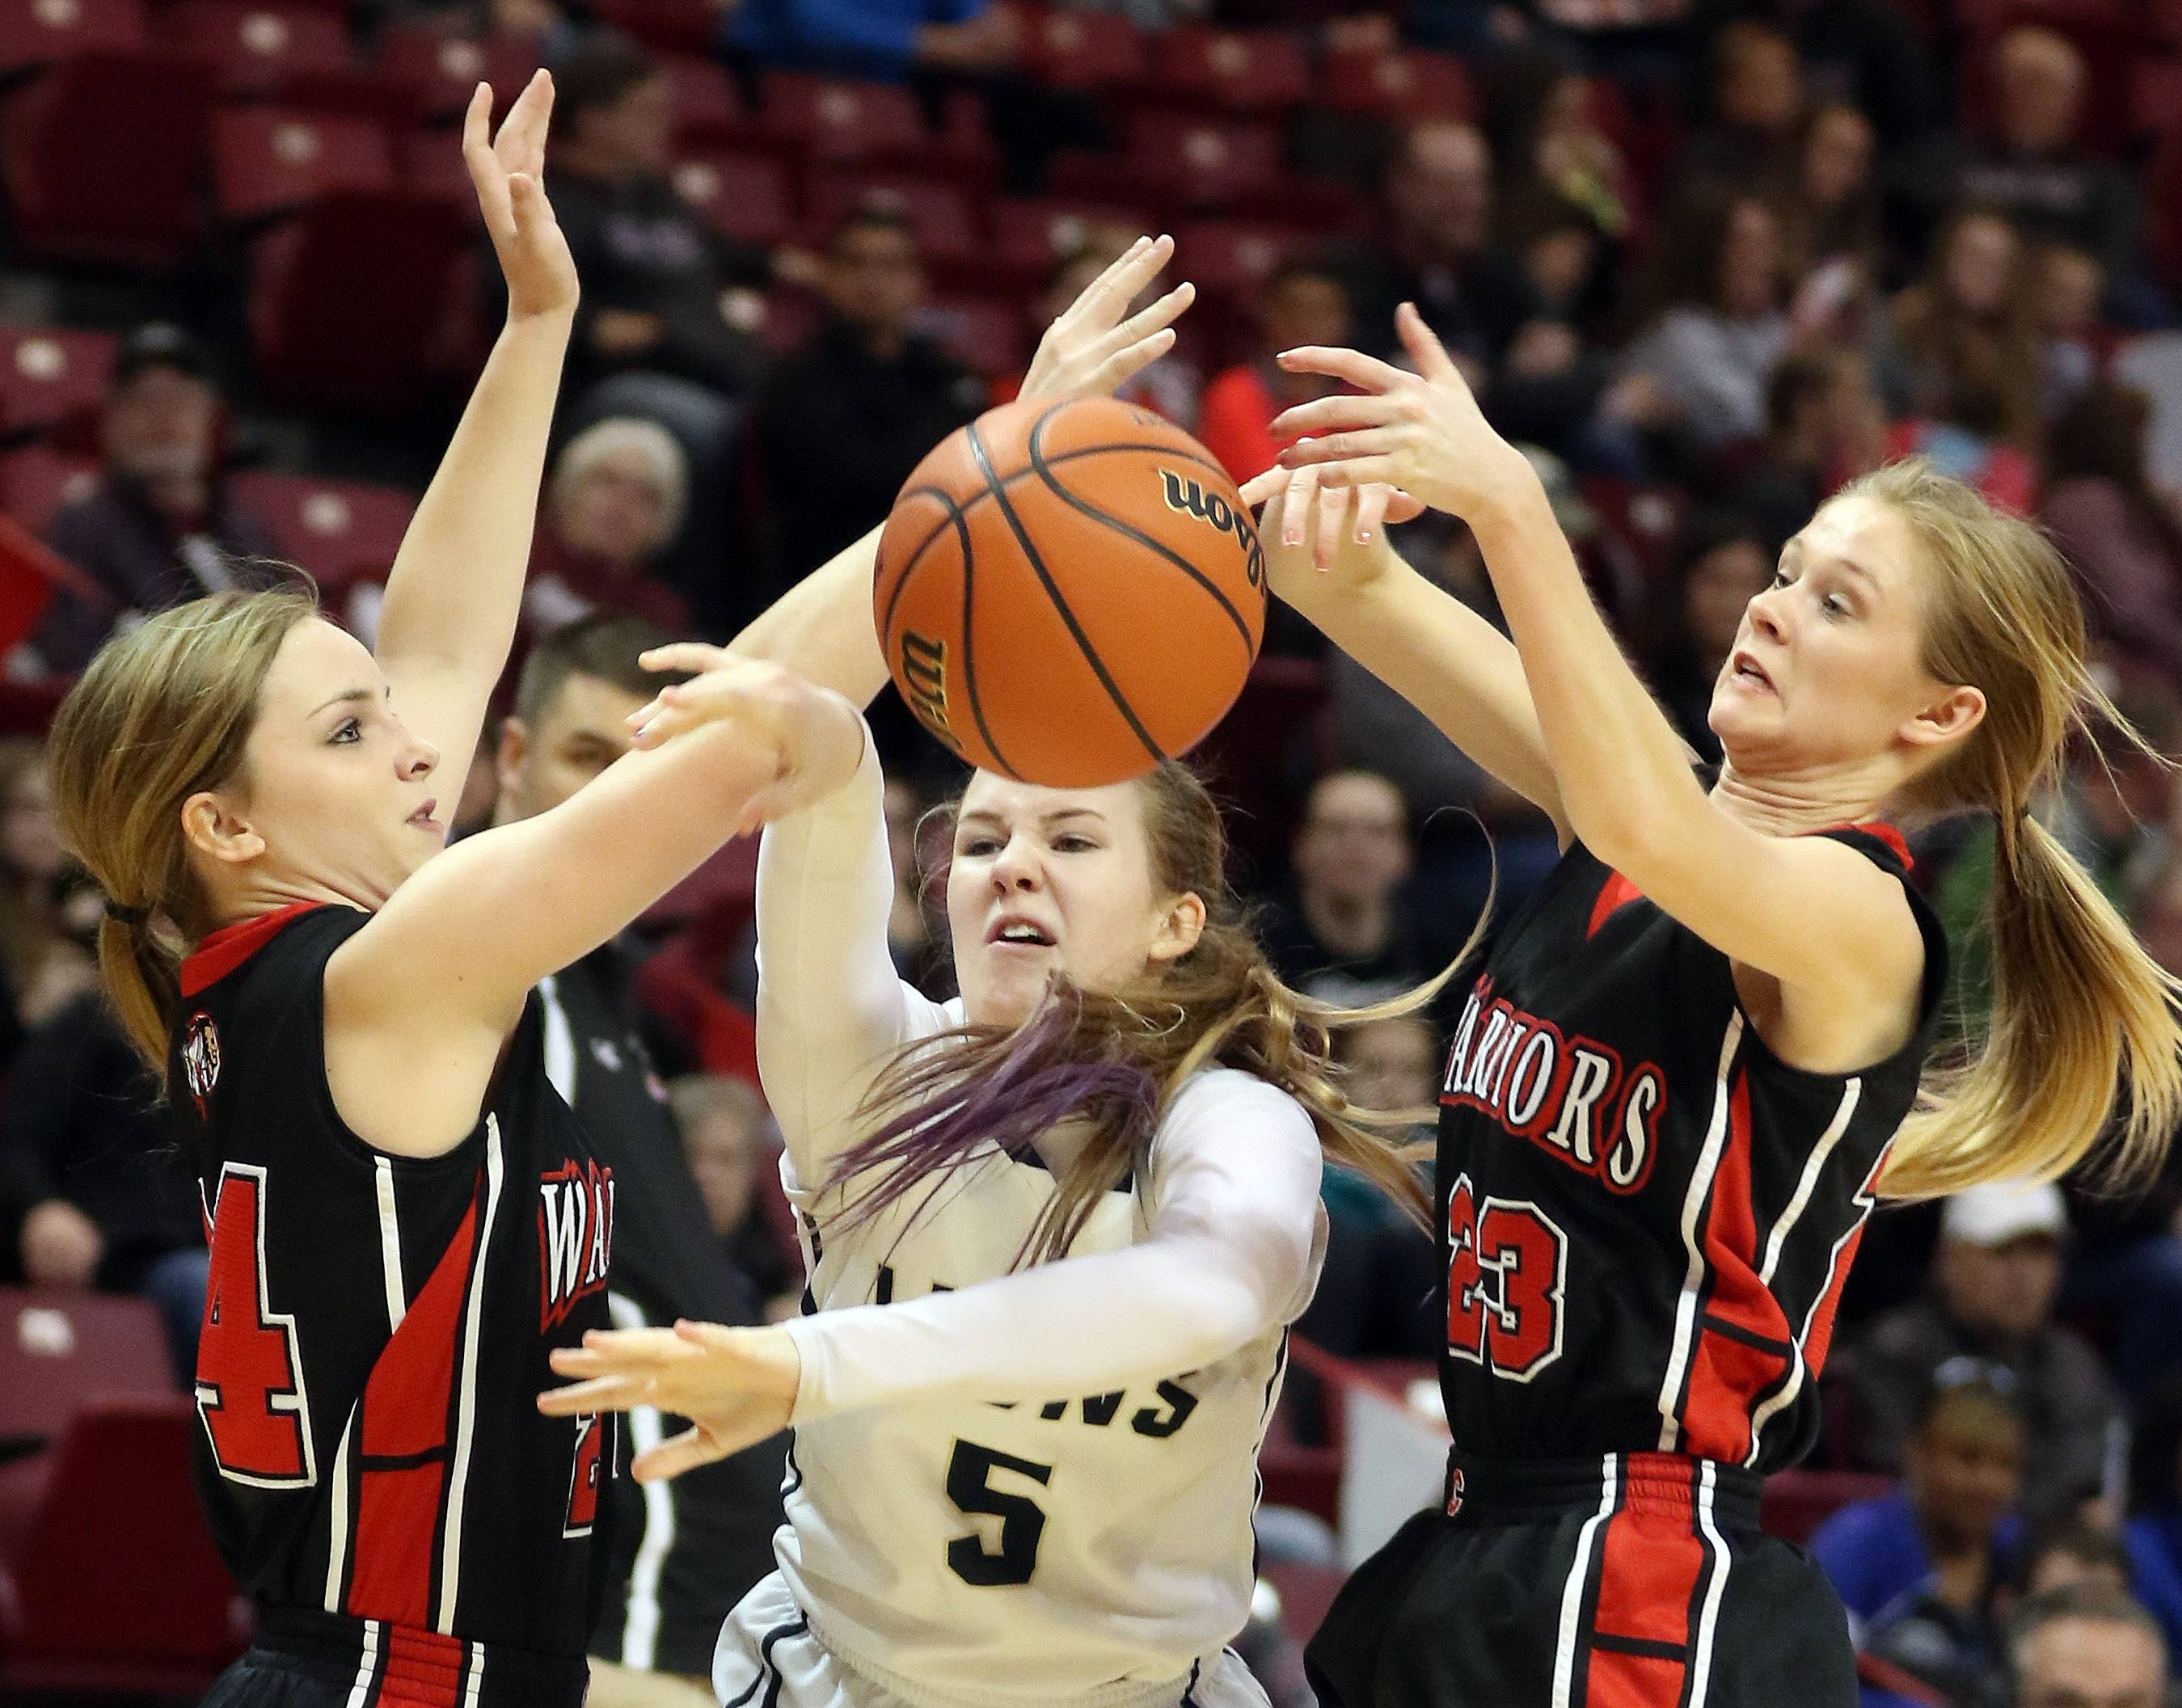 Harvest Christian's Jenn Kasper splits between Hardin's Emily Baalman, left, and Ashleigh Presley during the Class 1A girls basketball third place state tournament game Saturday in Normal.